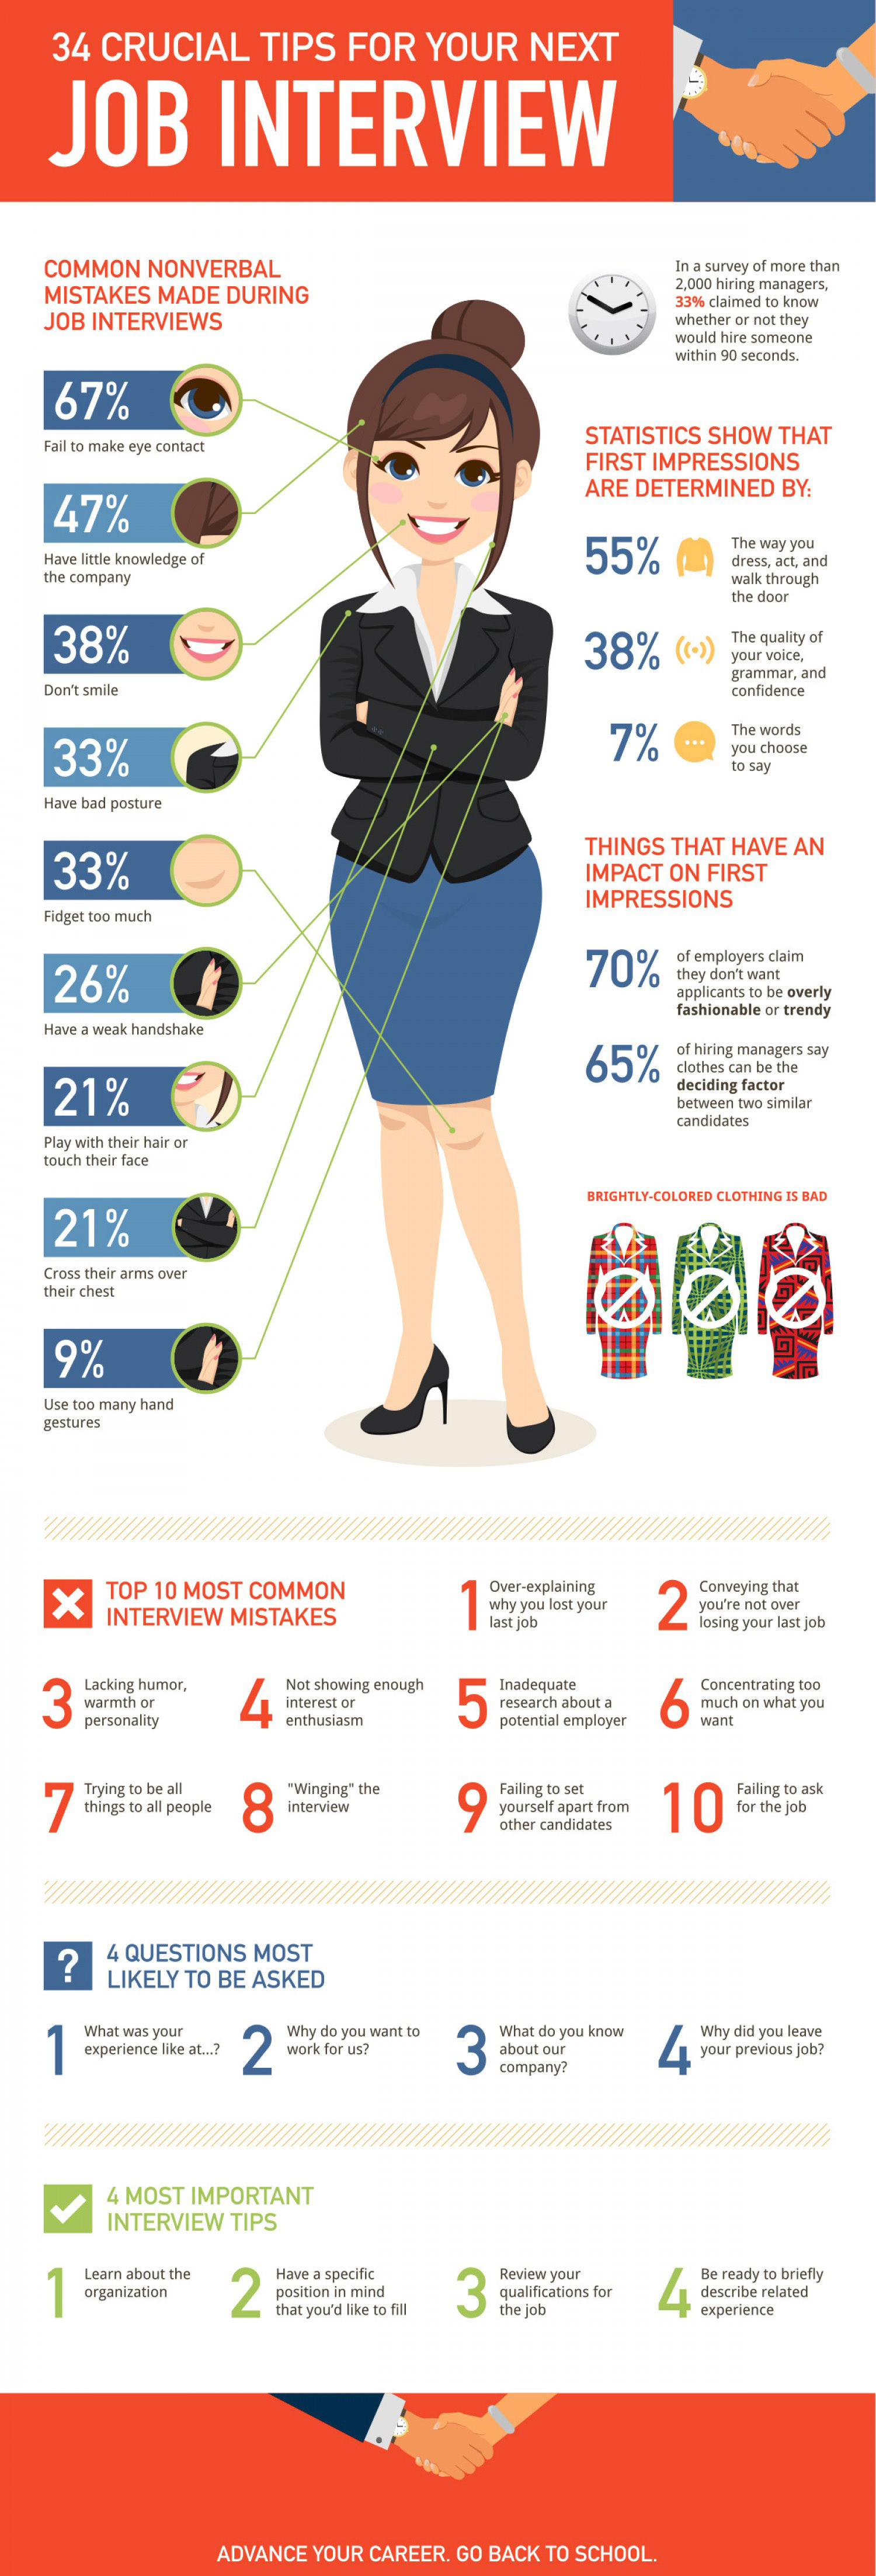 34 crucial tips for your next successful job interview